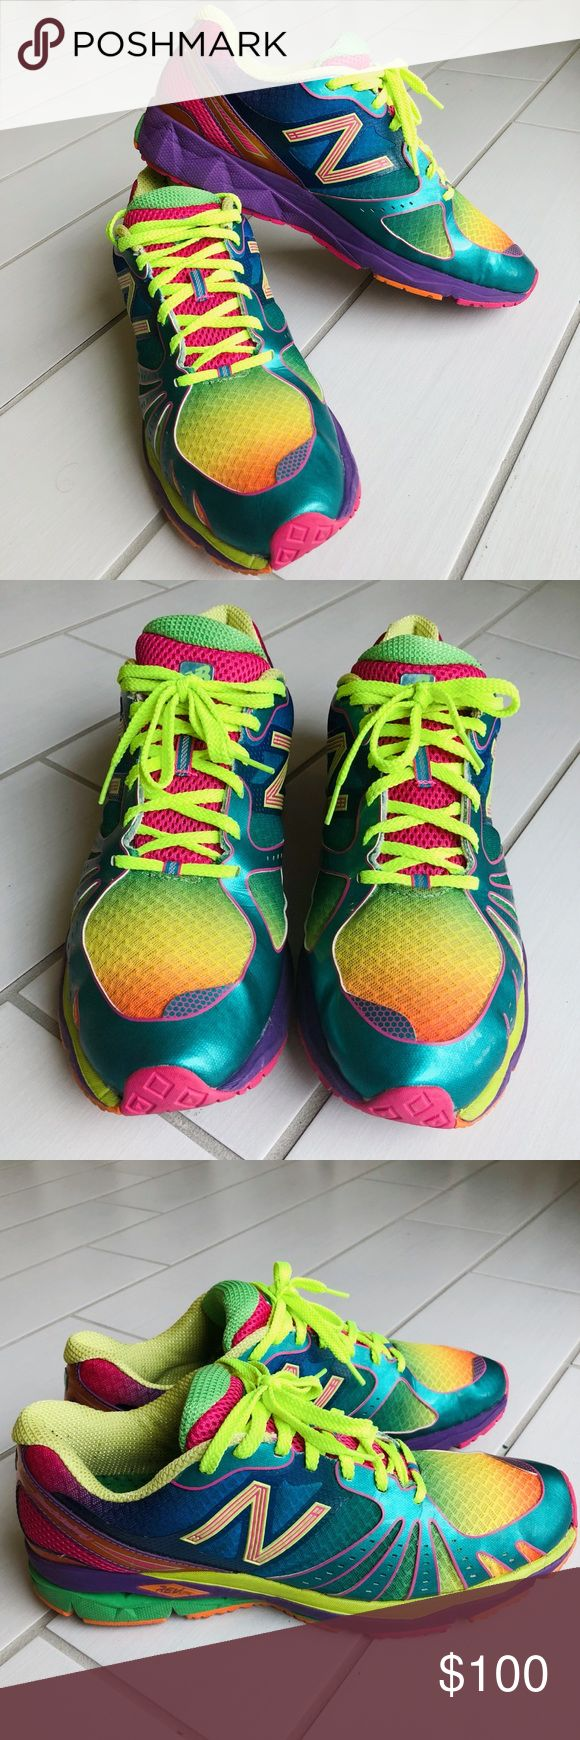 New Balance 890 Revlite Rainbow Sneakers MENS (12) Great condition! Barely worn!! Ask me any questions and make me an offer. 💙 New Balance Shoes Sneakers